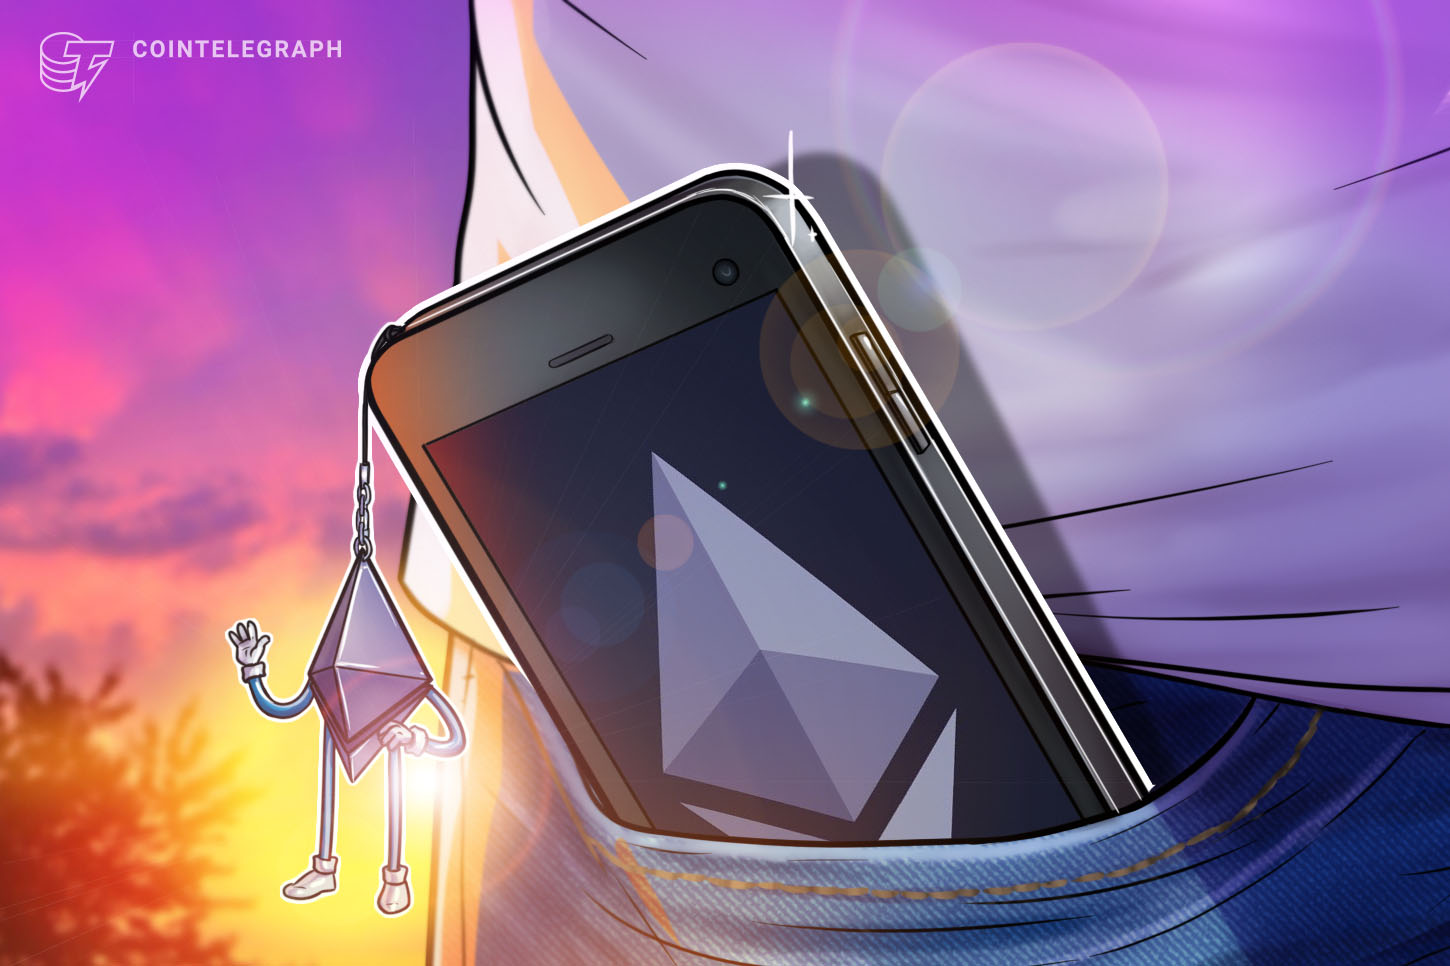 MyEtherWallet founder weighs in on the most crypto-friendly country